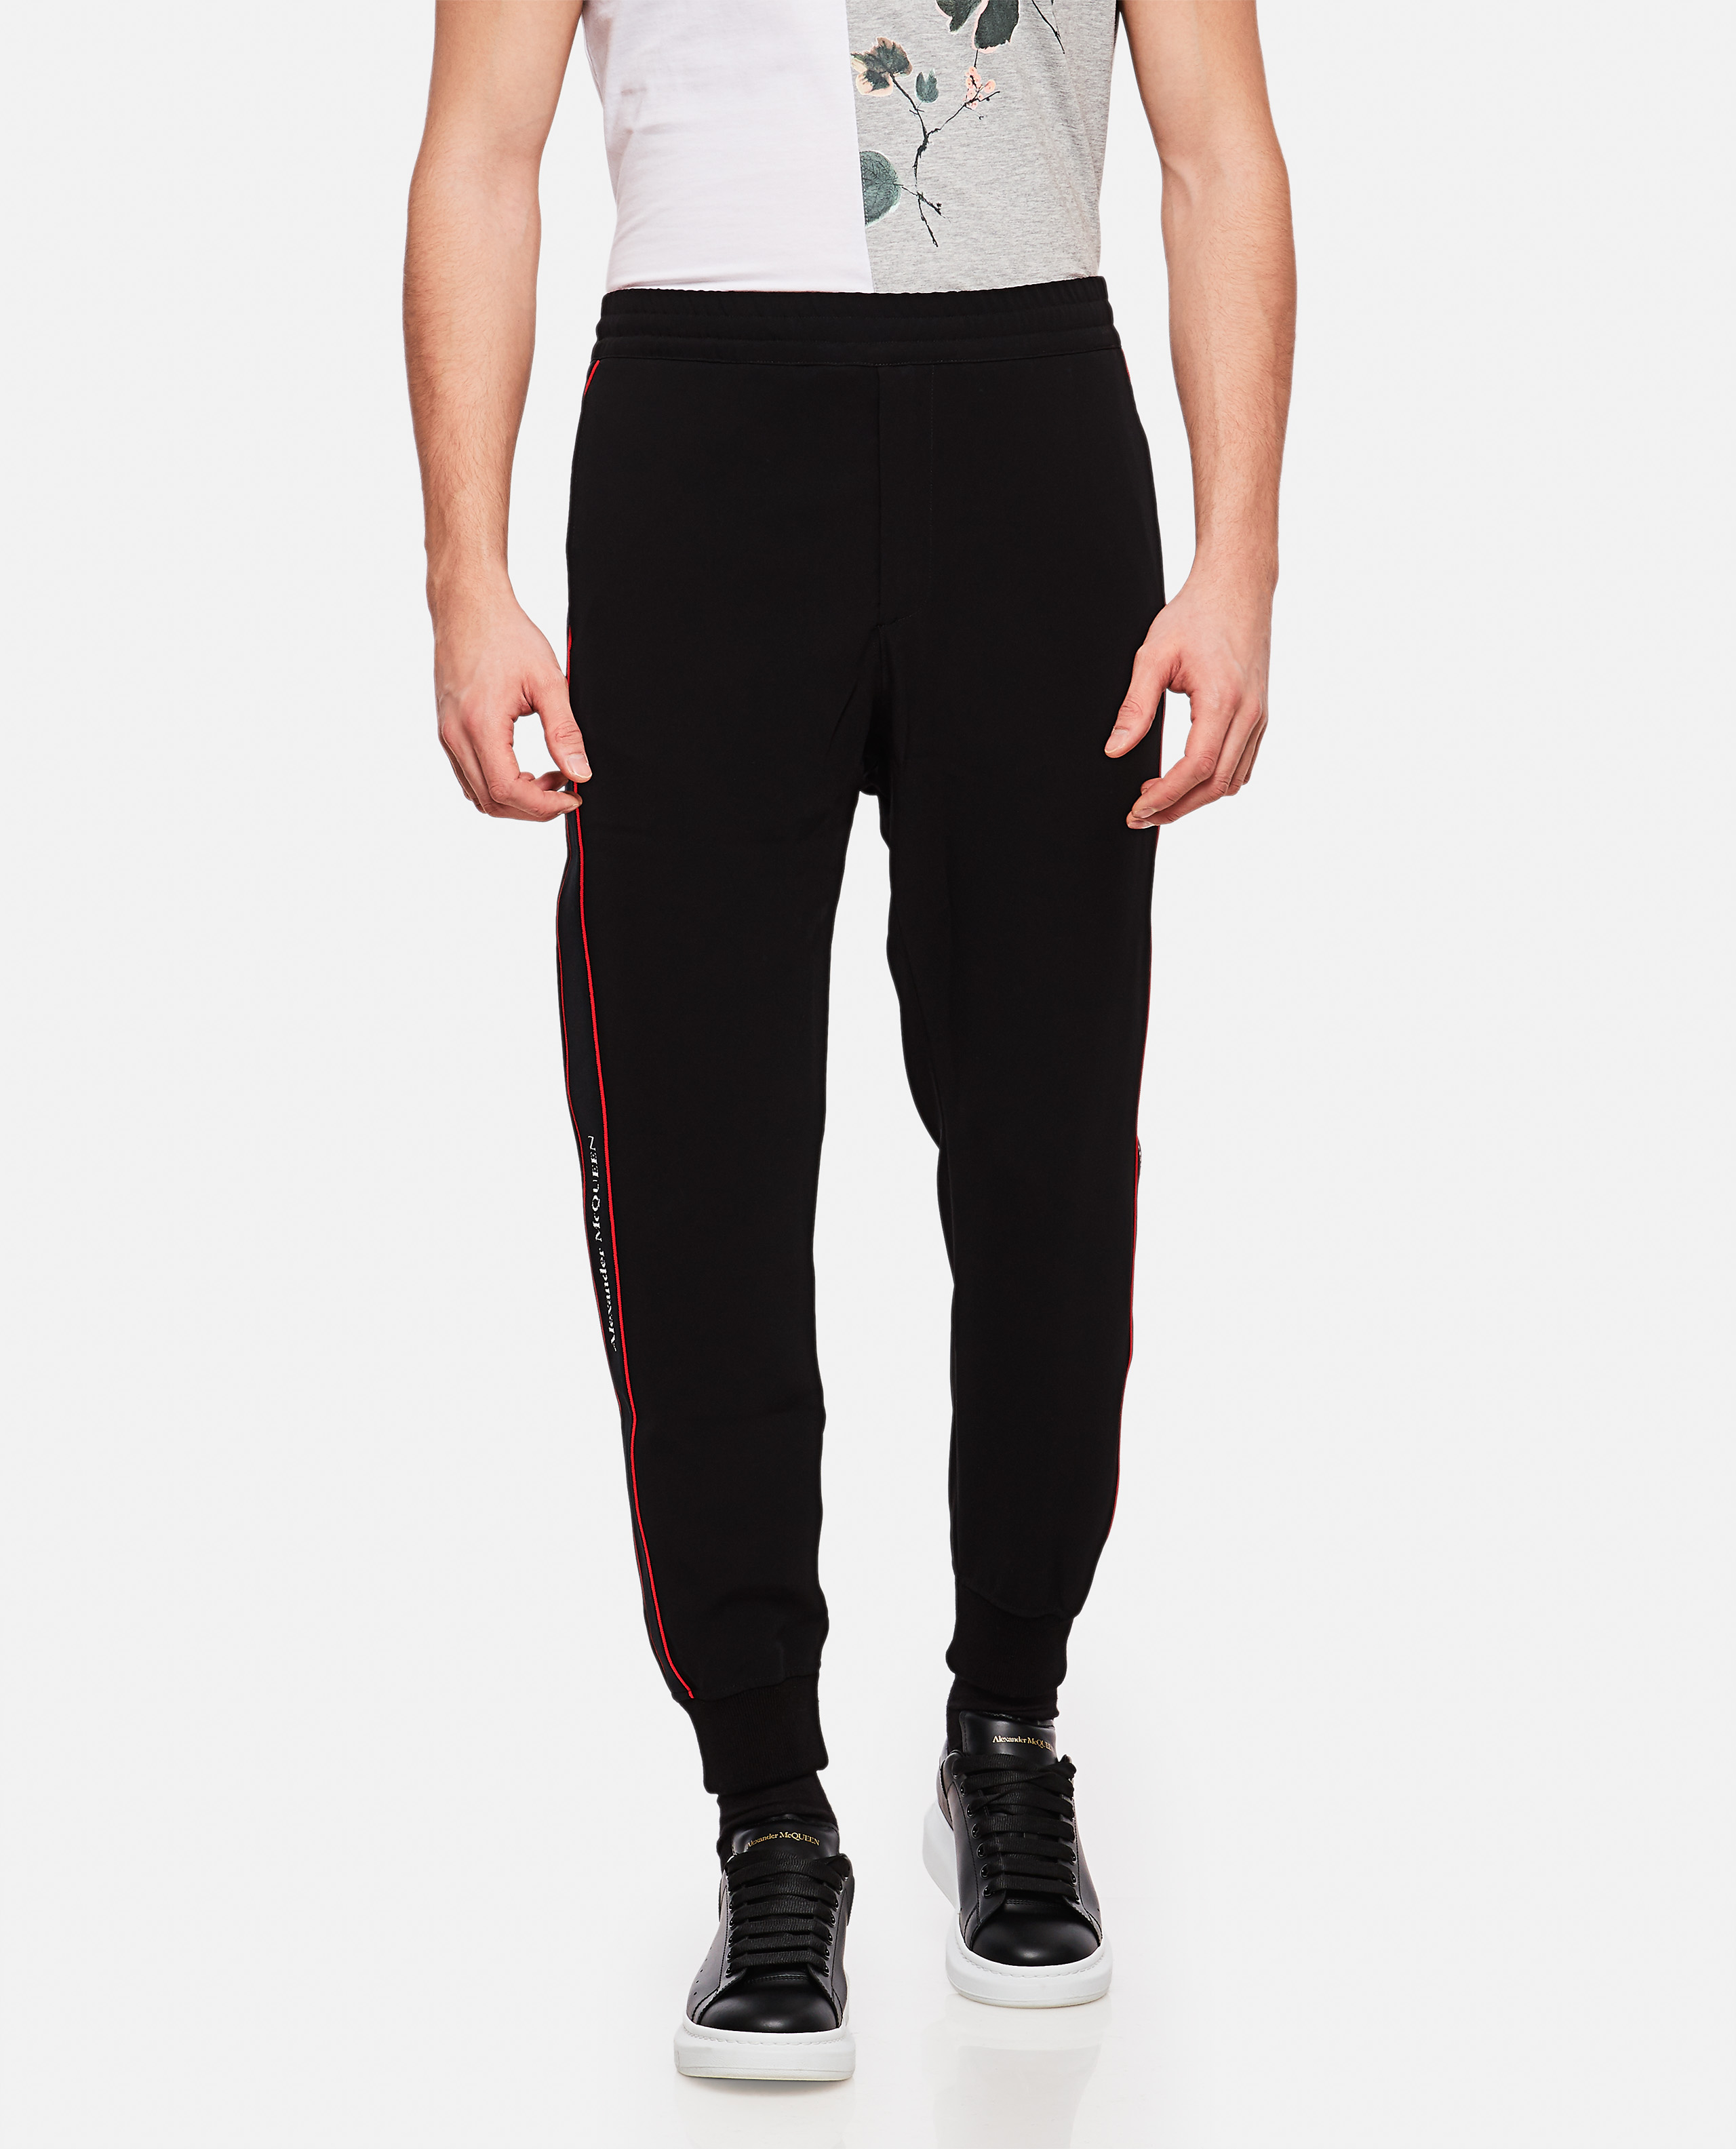 Sports trousers with side tape